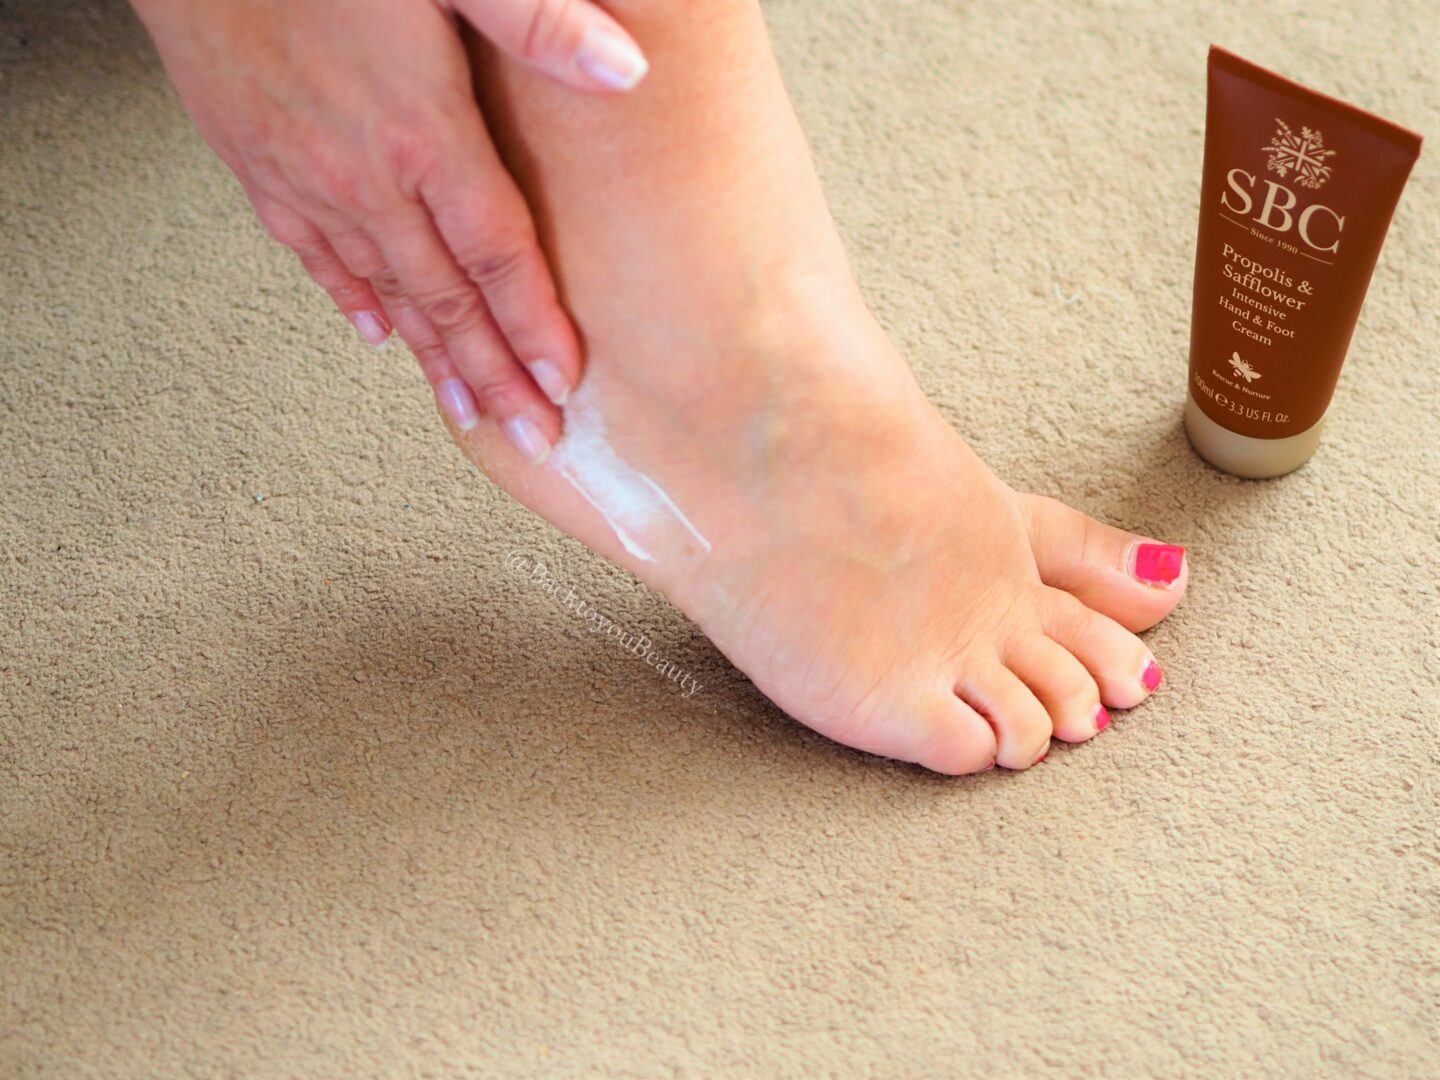 Propolis and safflower intensive hand and foot cream